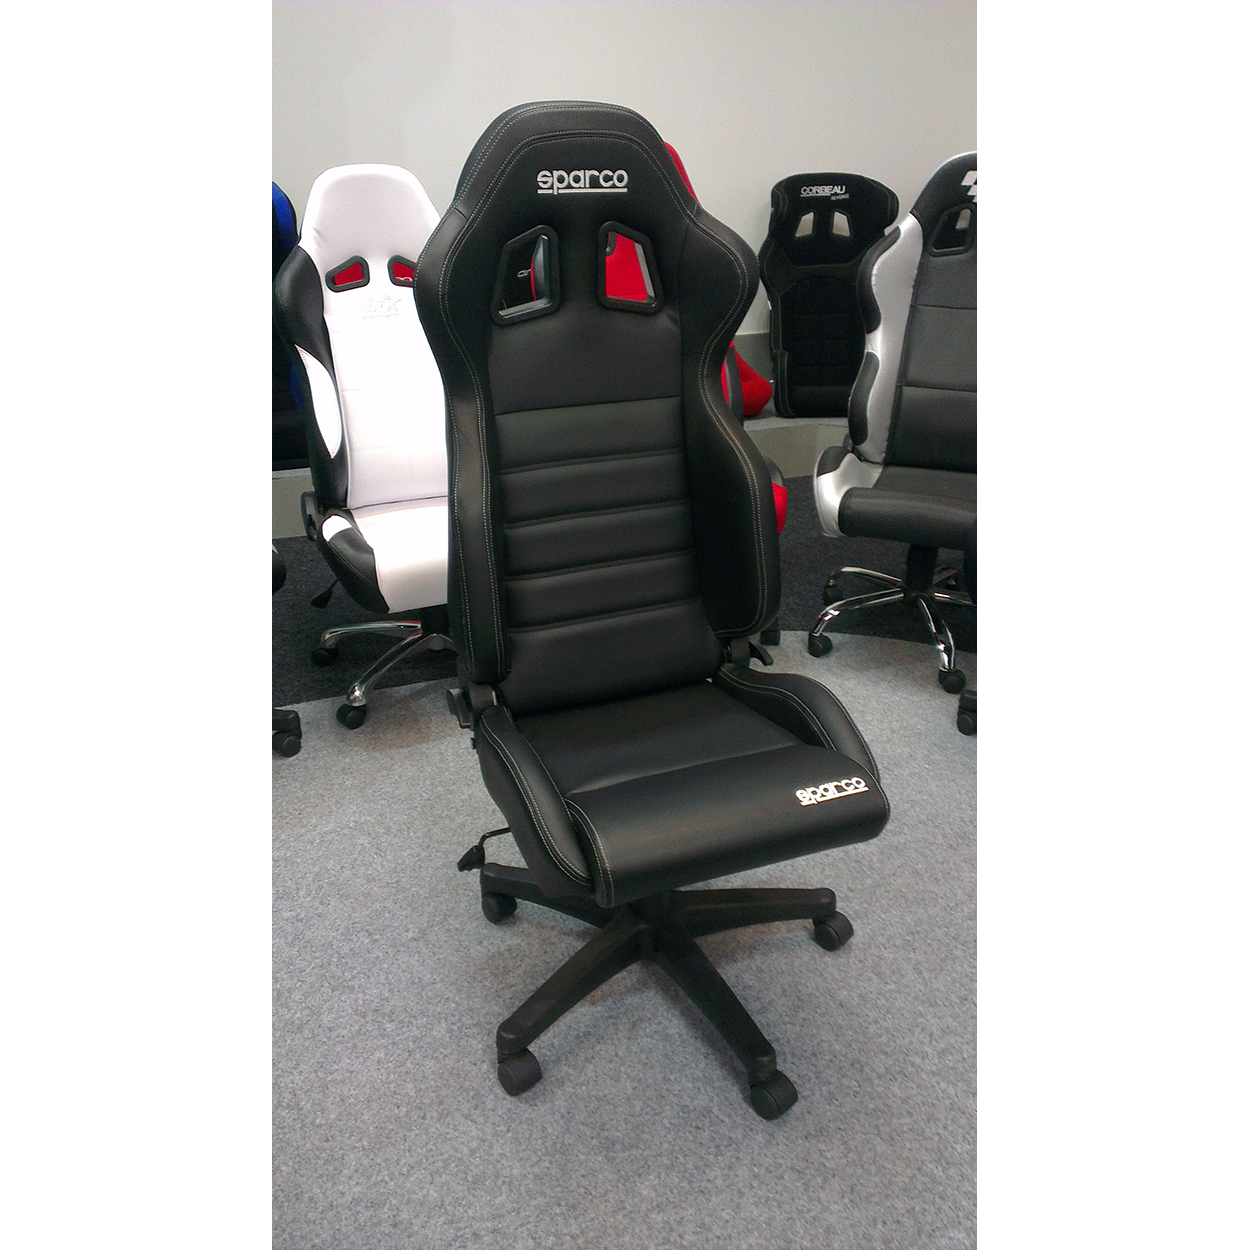 Sparco R100 Vinyl Racing Office Sports SeatSparco Office Racing Chairs   Racing car inspired seating   GSM  . Racing Seat Office Chair Uk. Home Design Ideas